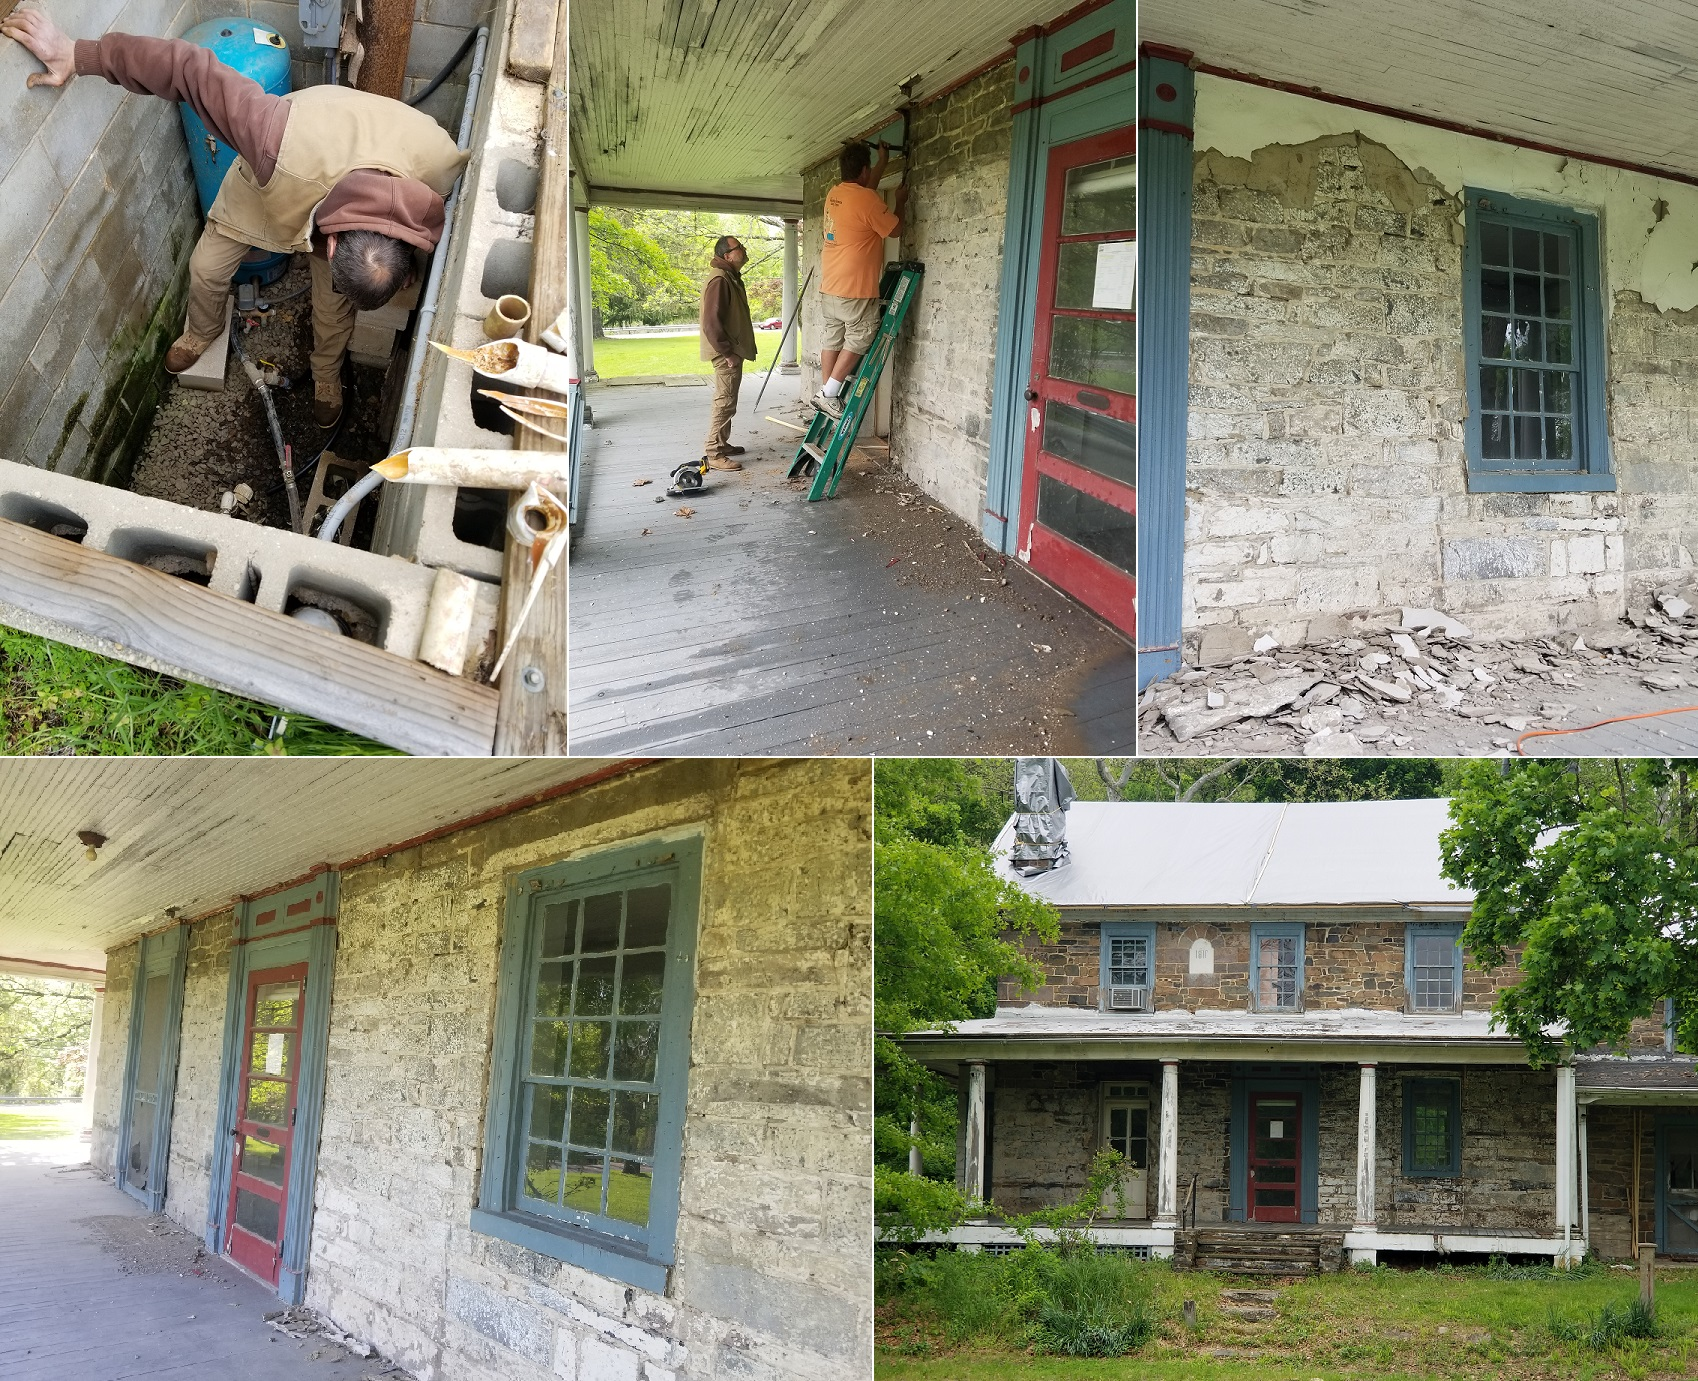 Clockwise: Bruce down in the well pit; Pulling off some of the 1920's trim; Taking the portland cement (added circa 1927) off the stone; The front after demo part 1; The newly exposed facade.